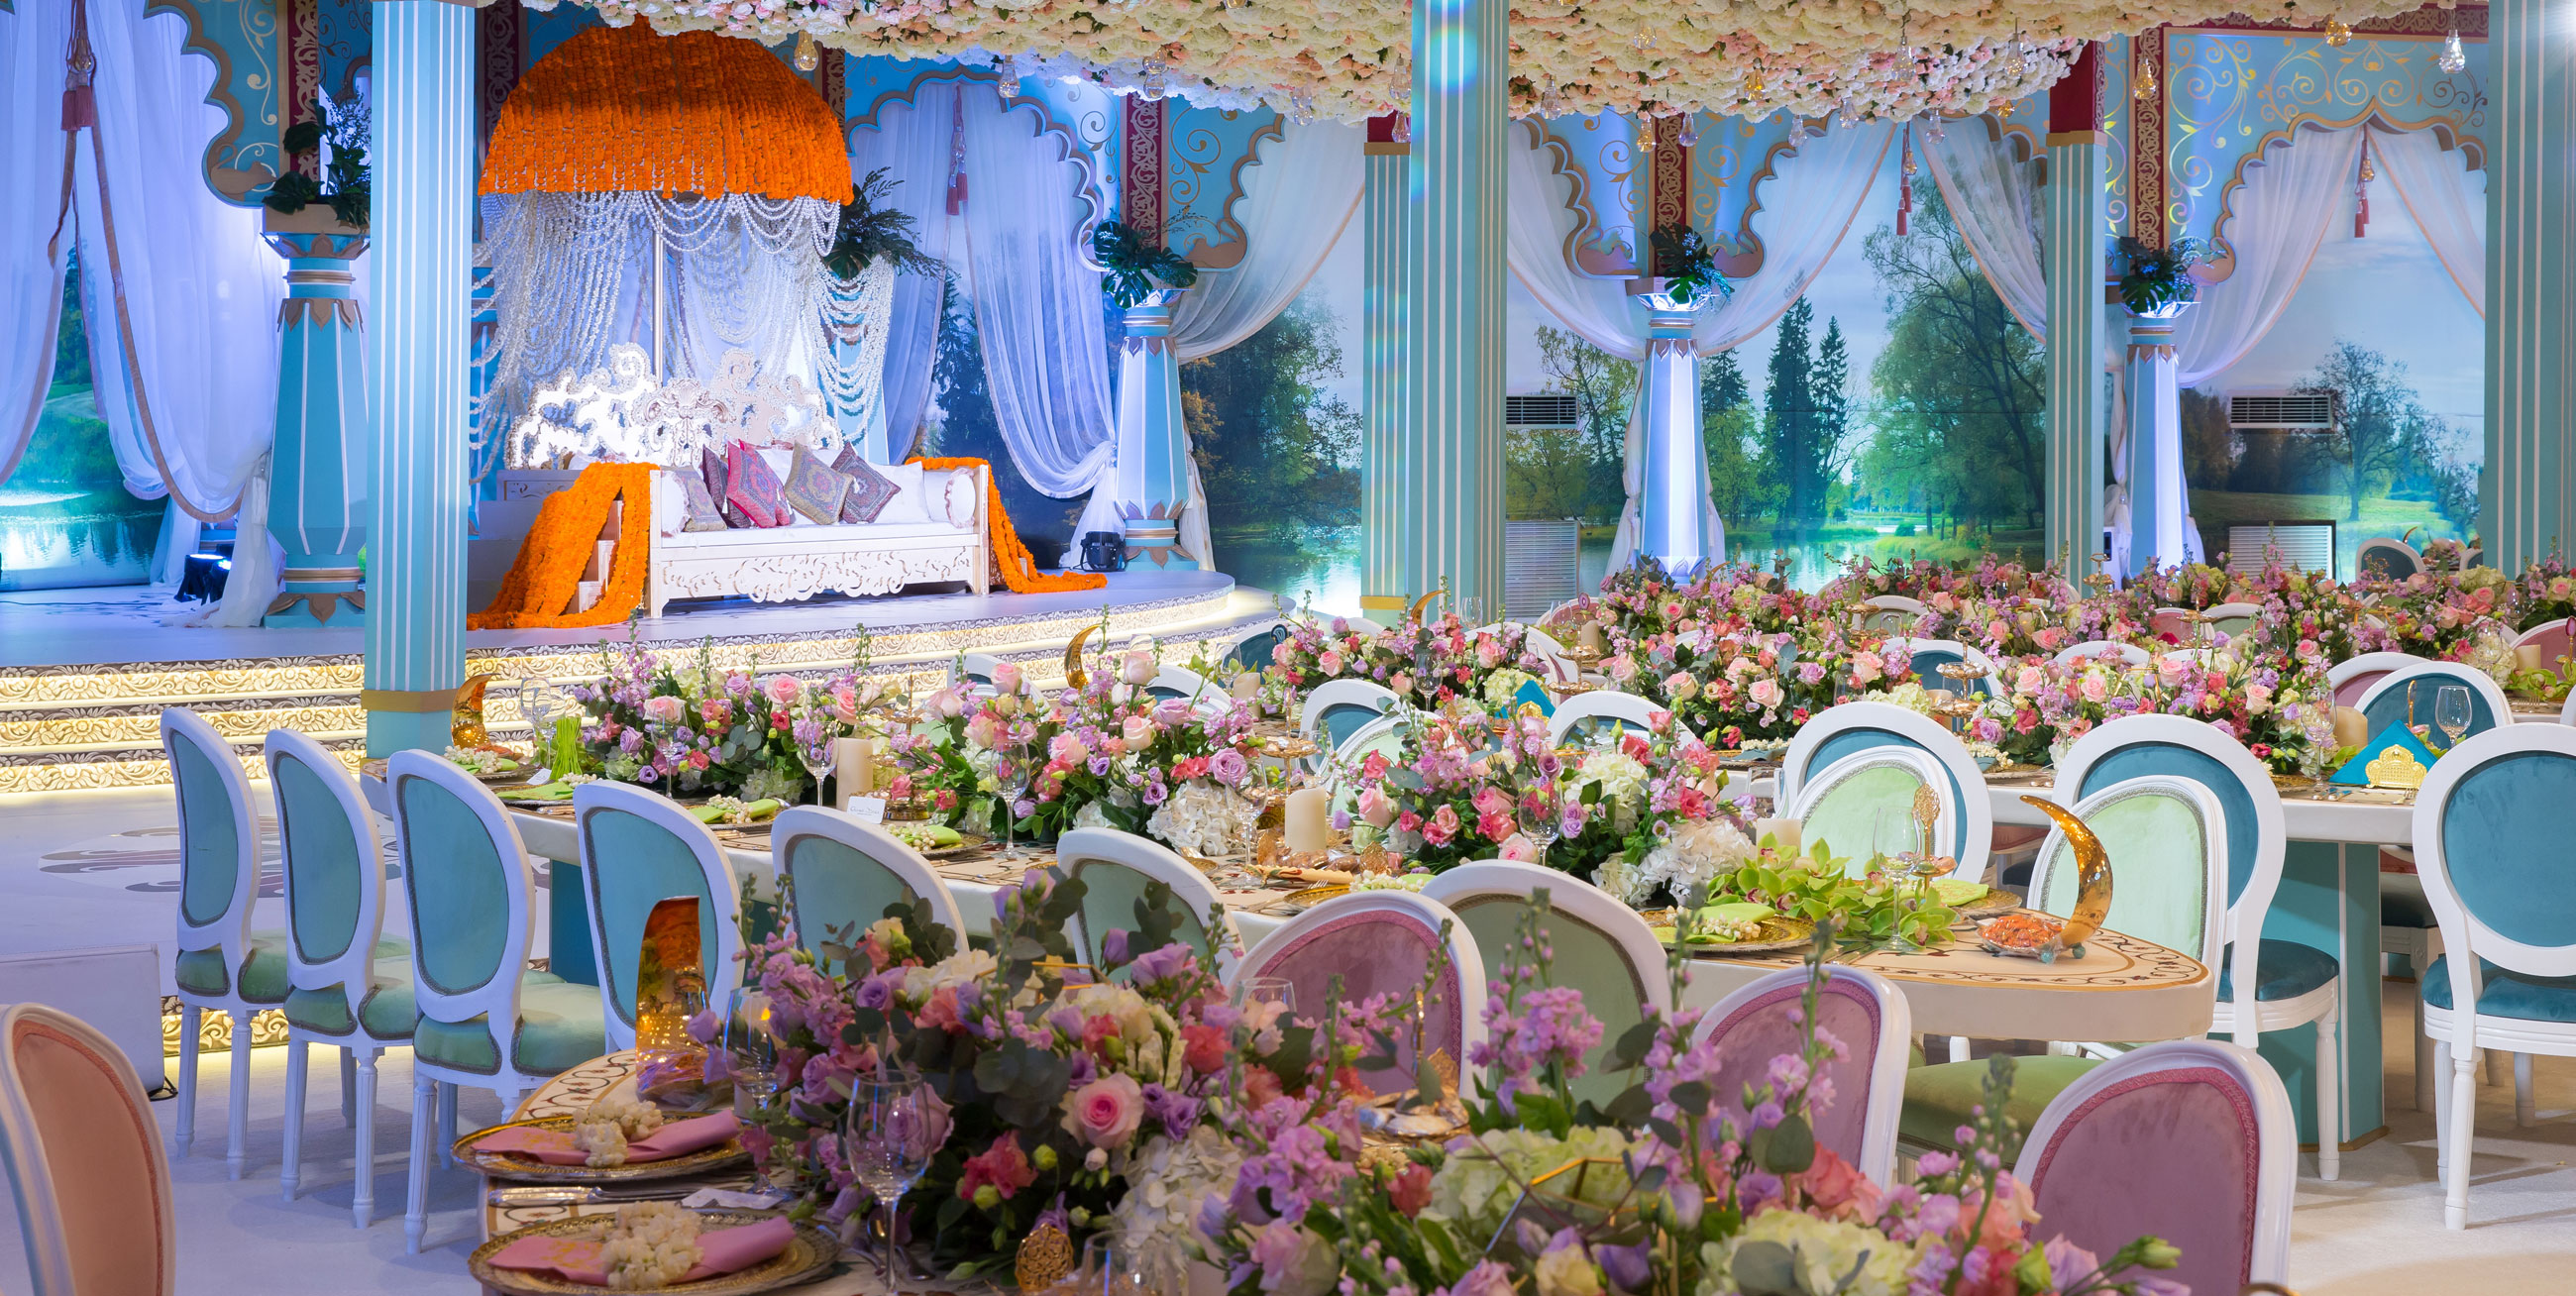 Olivier Dolz Wedding And Party Planner Is A Full Service